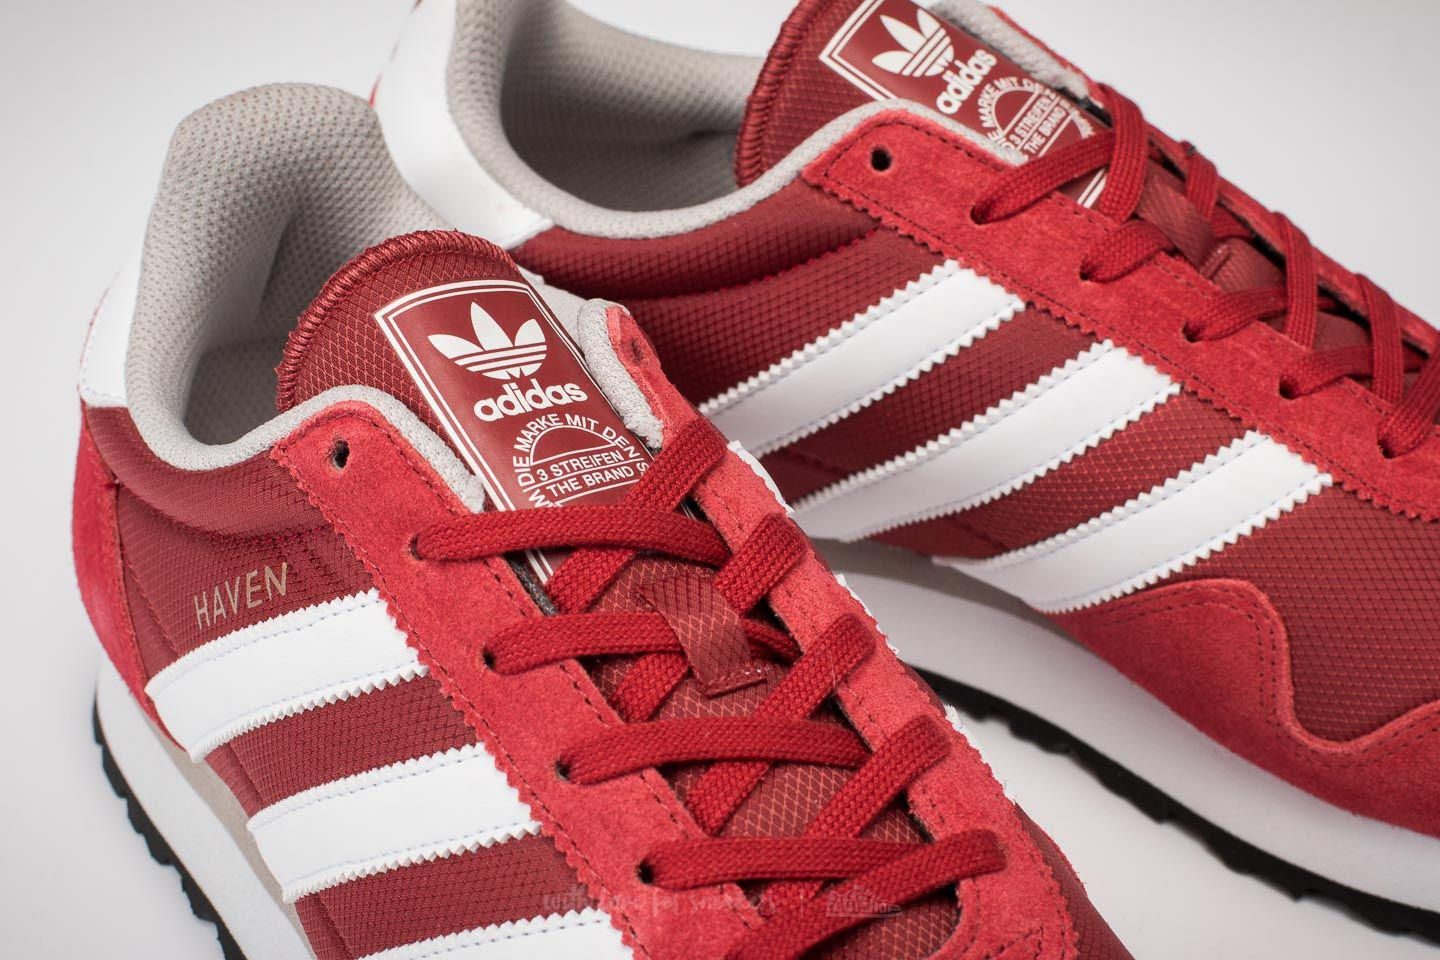 Lyst - adidas Originals Adidas Haven Mystery Red  Ftw White  Clear ... 44279b9dc